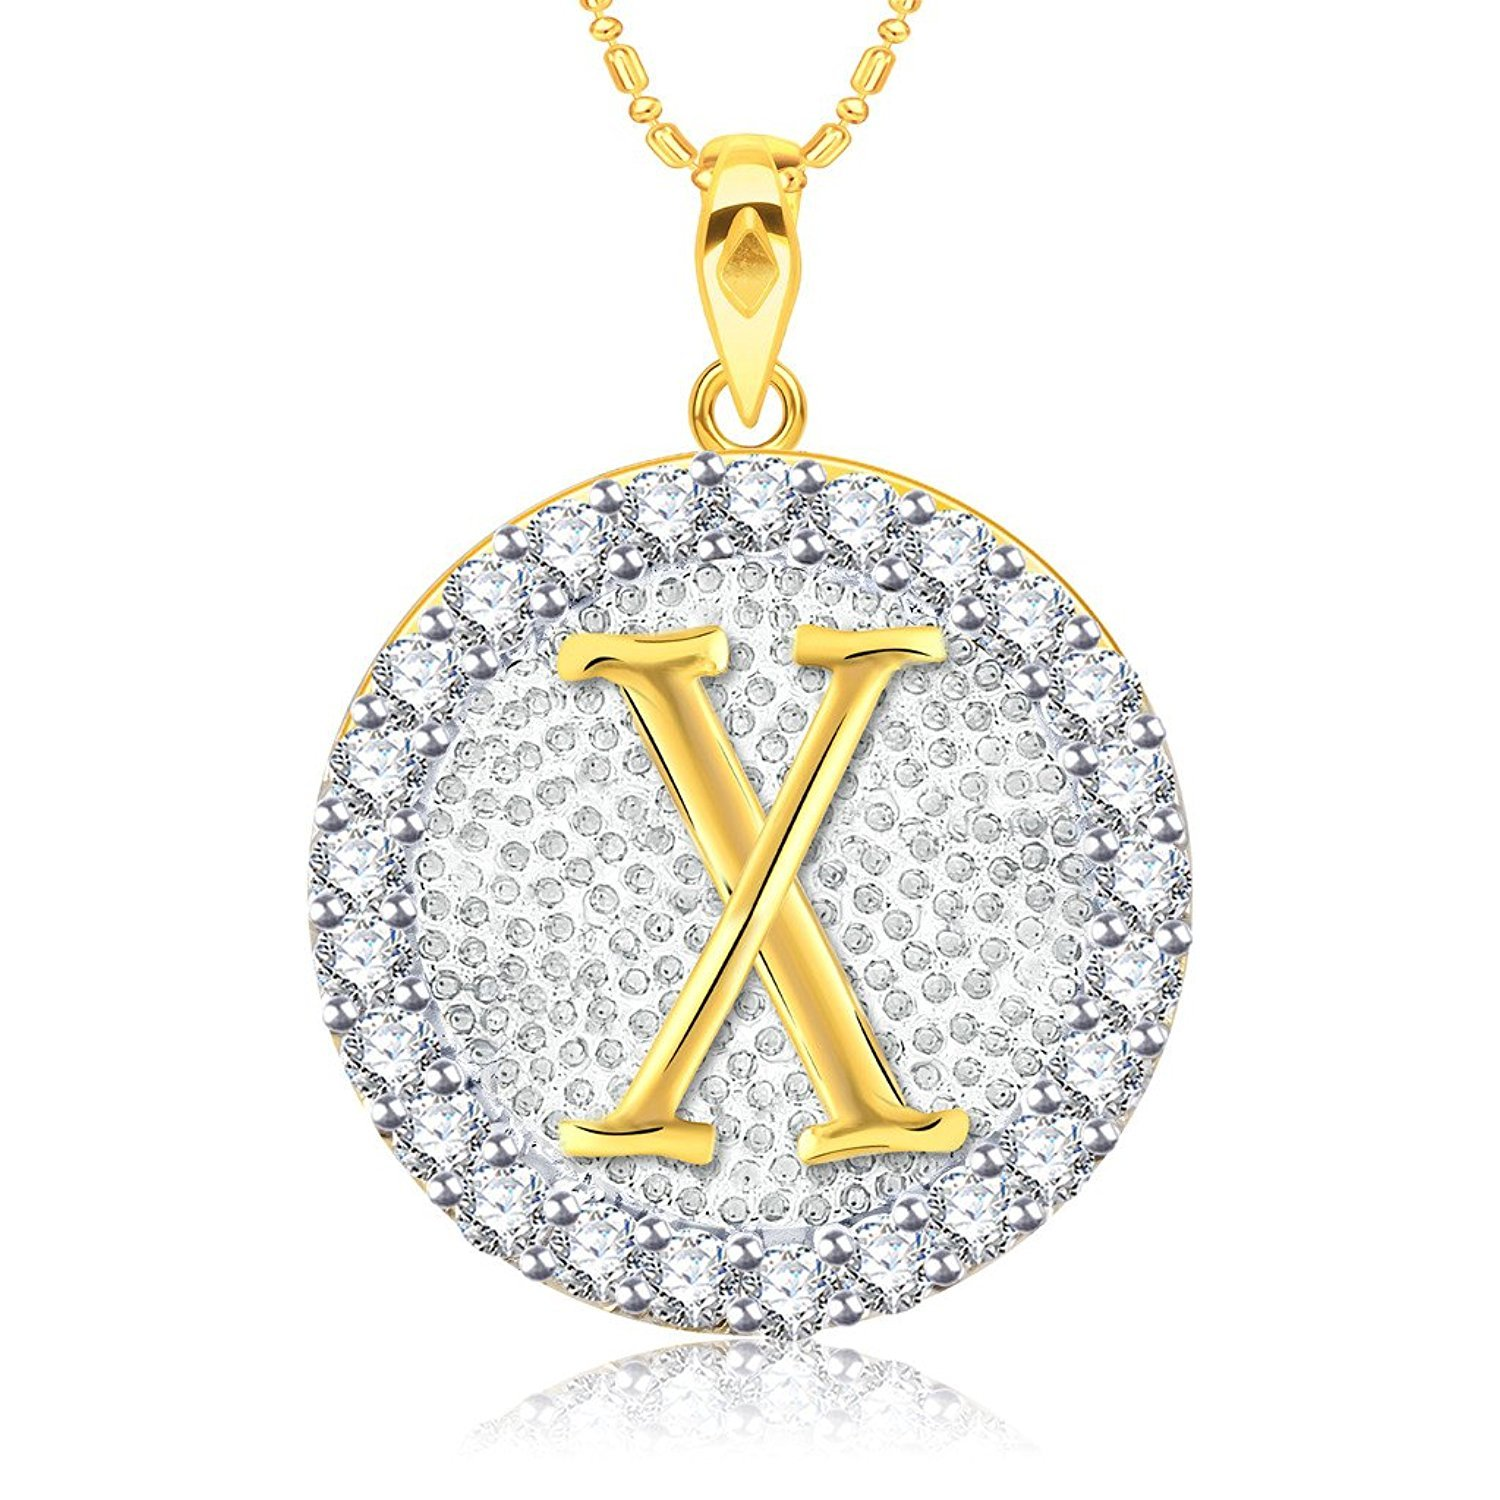 Simulated Diamond Studded Fashion Initial Alphabet Letter X Pendant Necklace in 14K Yellow Gold Plated With Box Chain